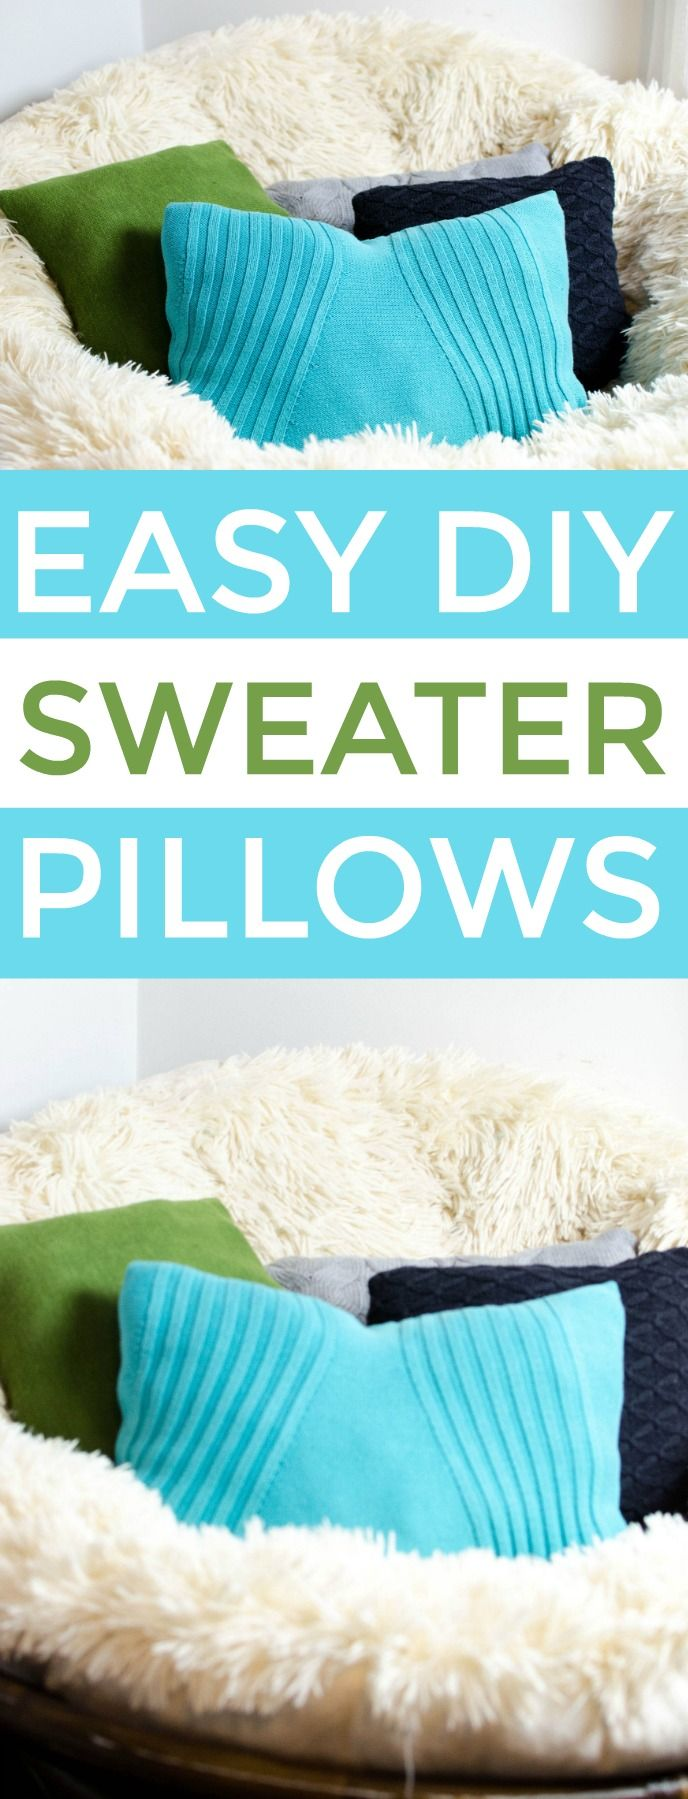 These DIY sweater pillows are a great way to reuse an old sweater and turn them ...